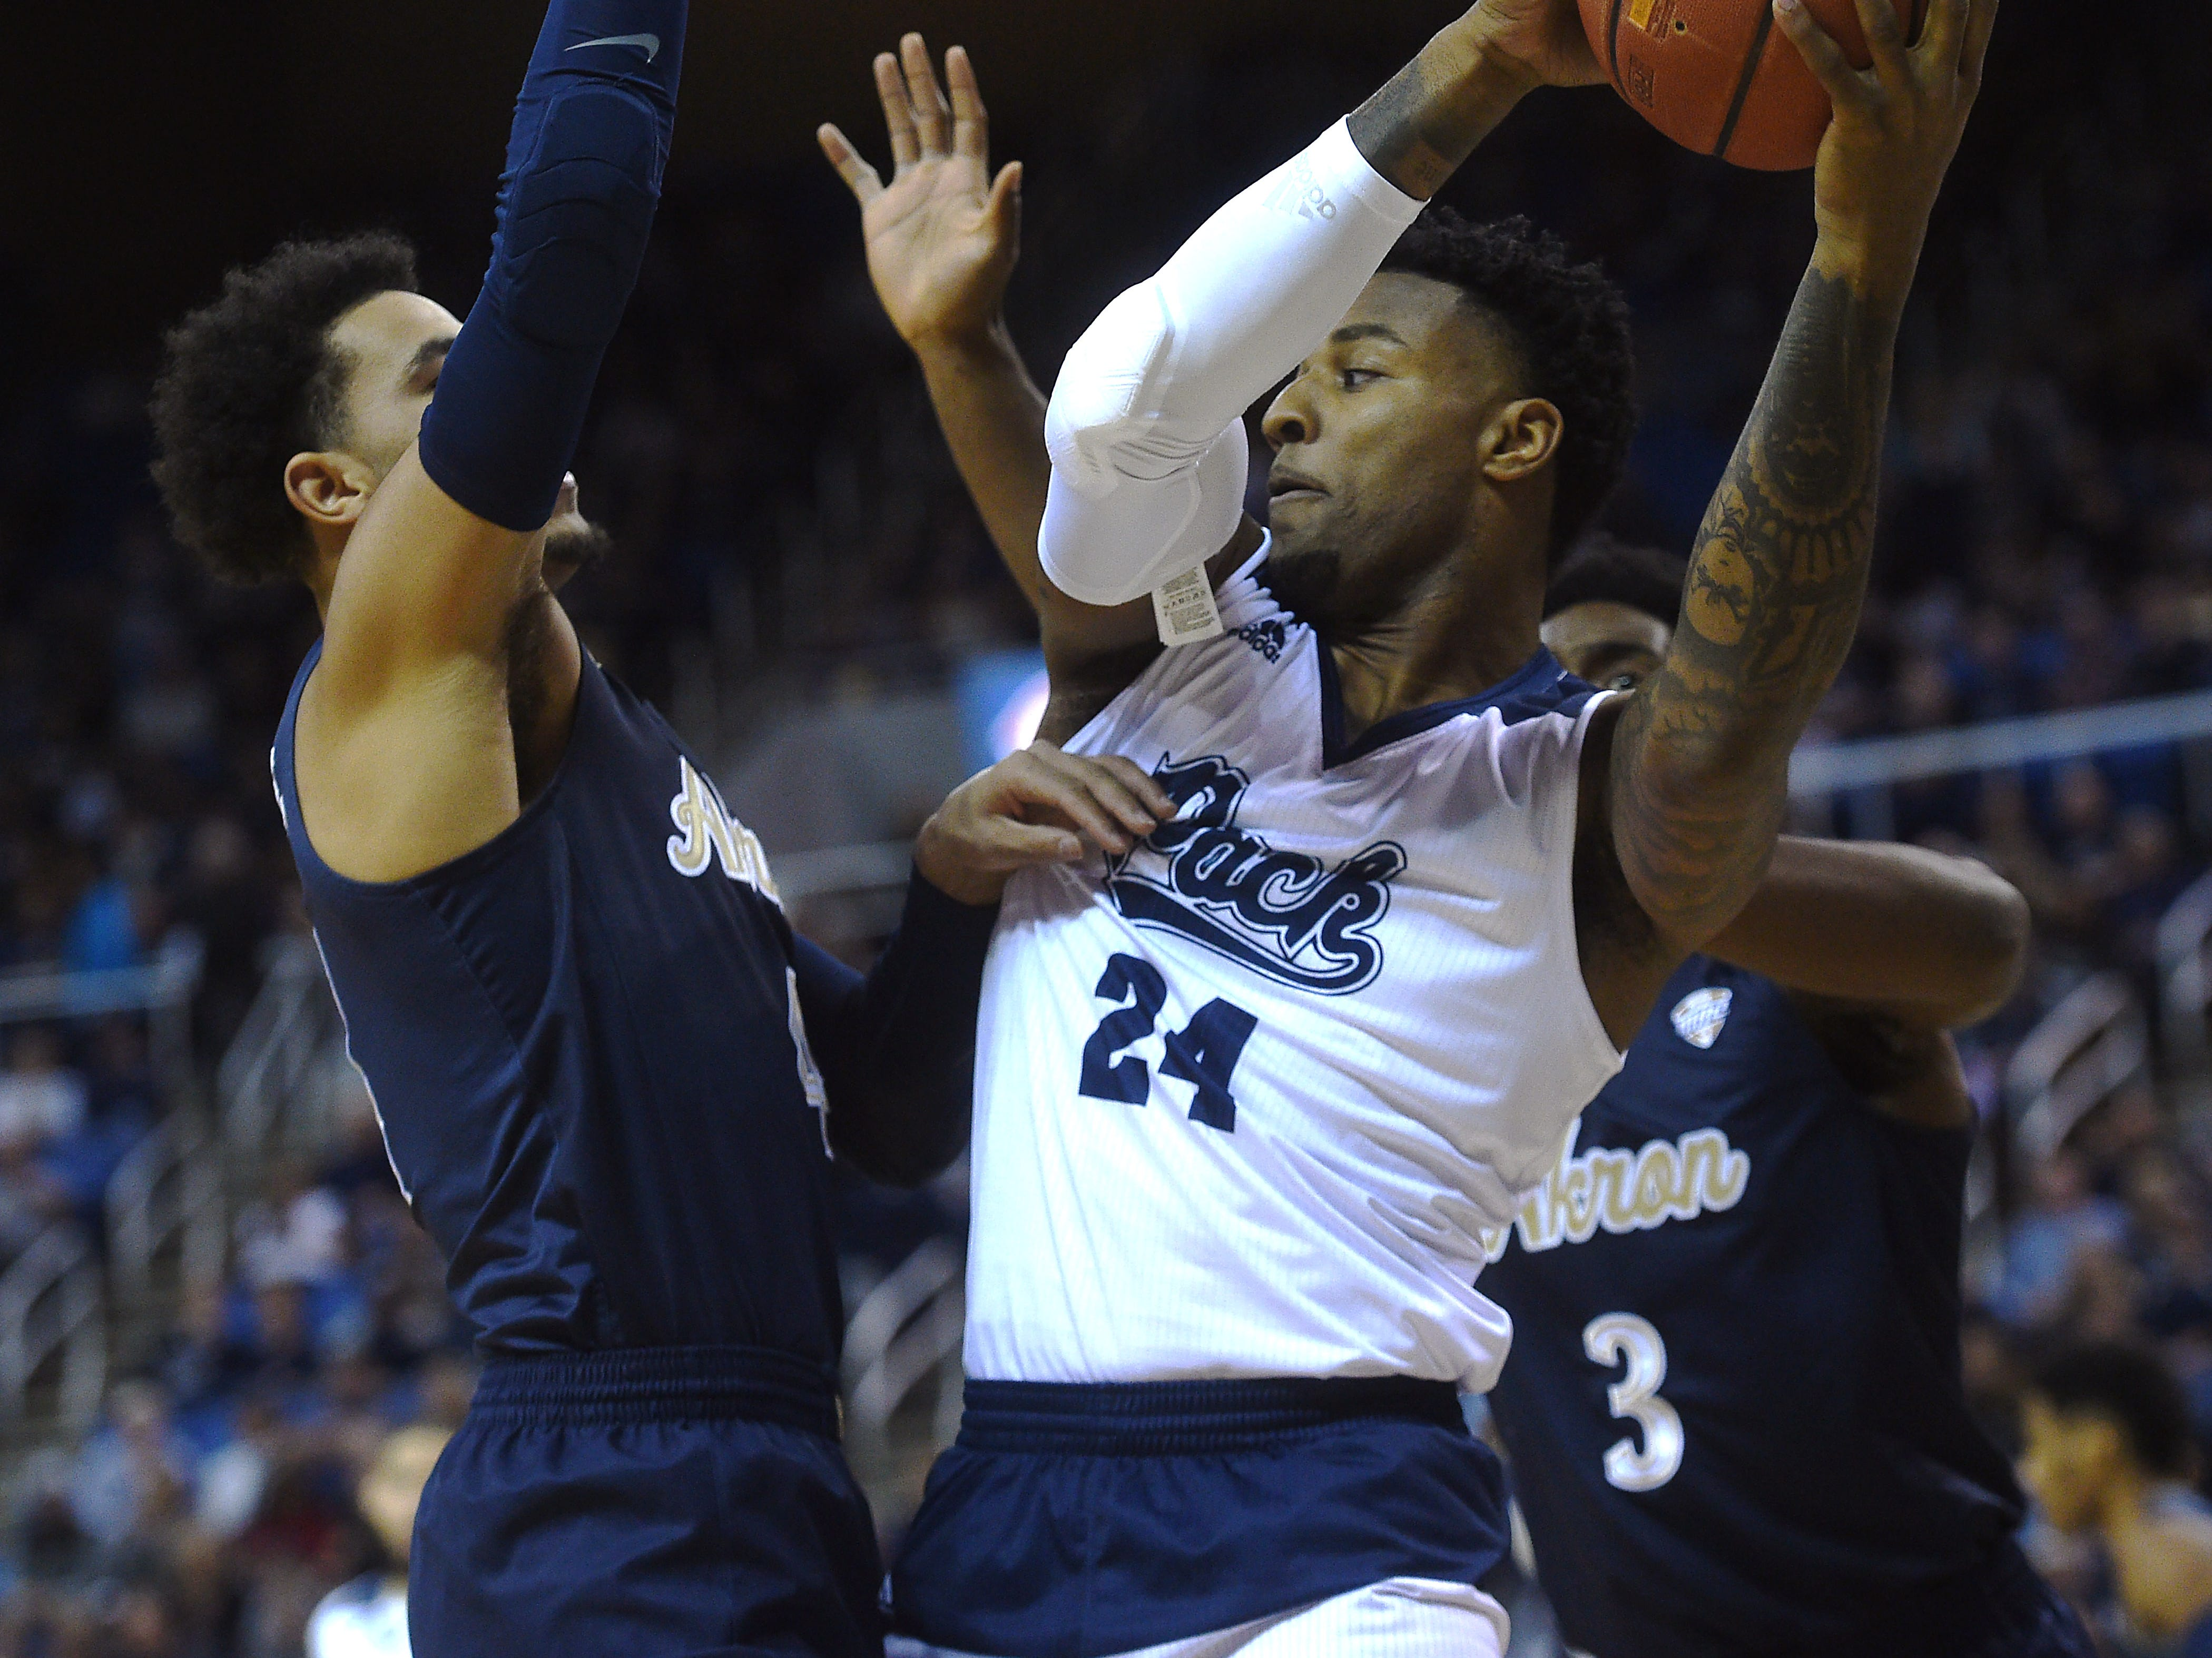 Nevada's Jordan Caroline (24) grabs a rebound while taking on Akron during their basketball game at Lawlor Events Center in Reno on Dec. 22, 2018.